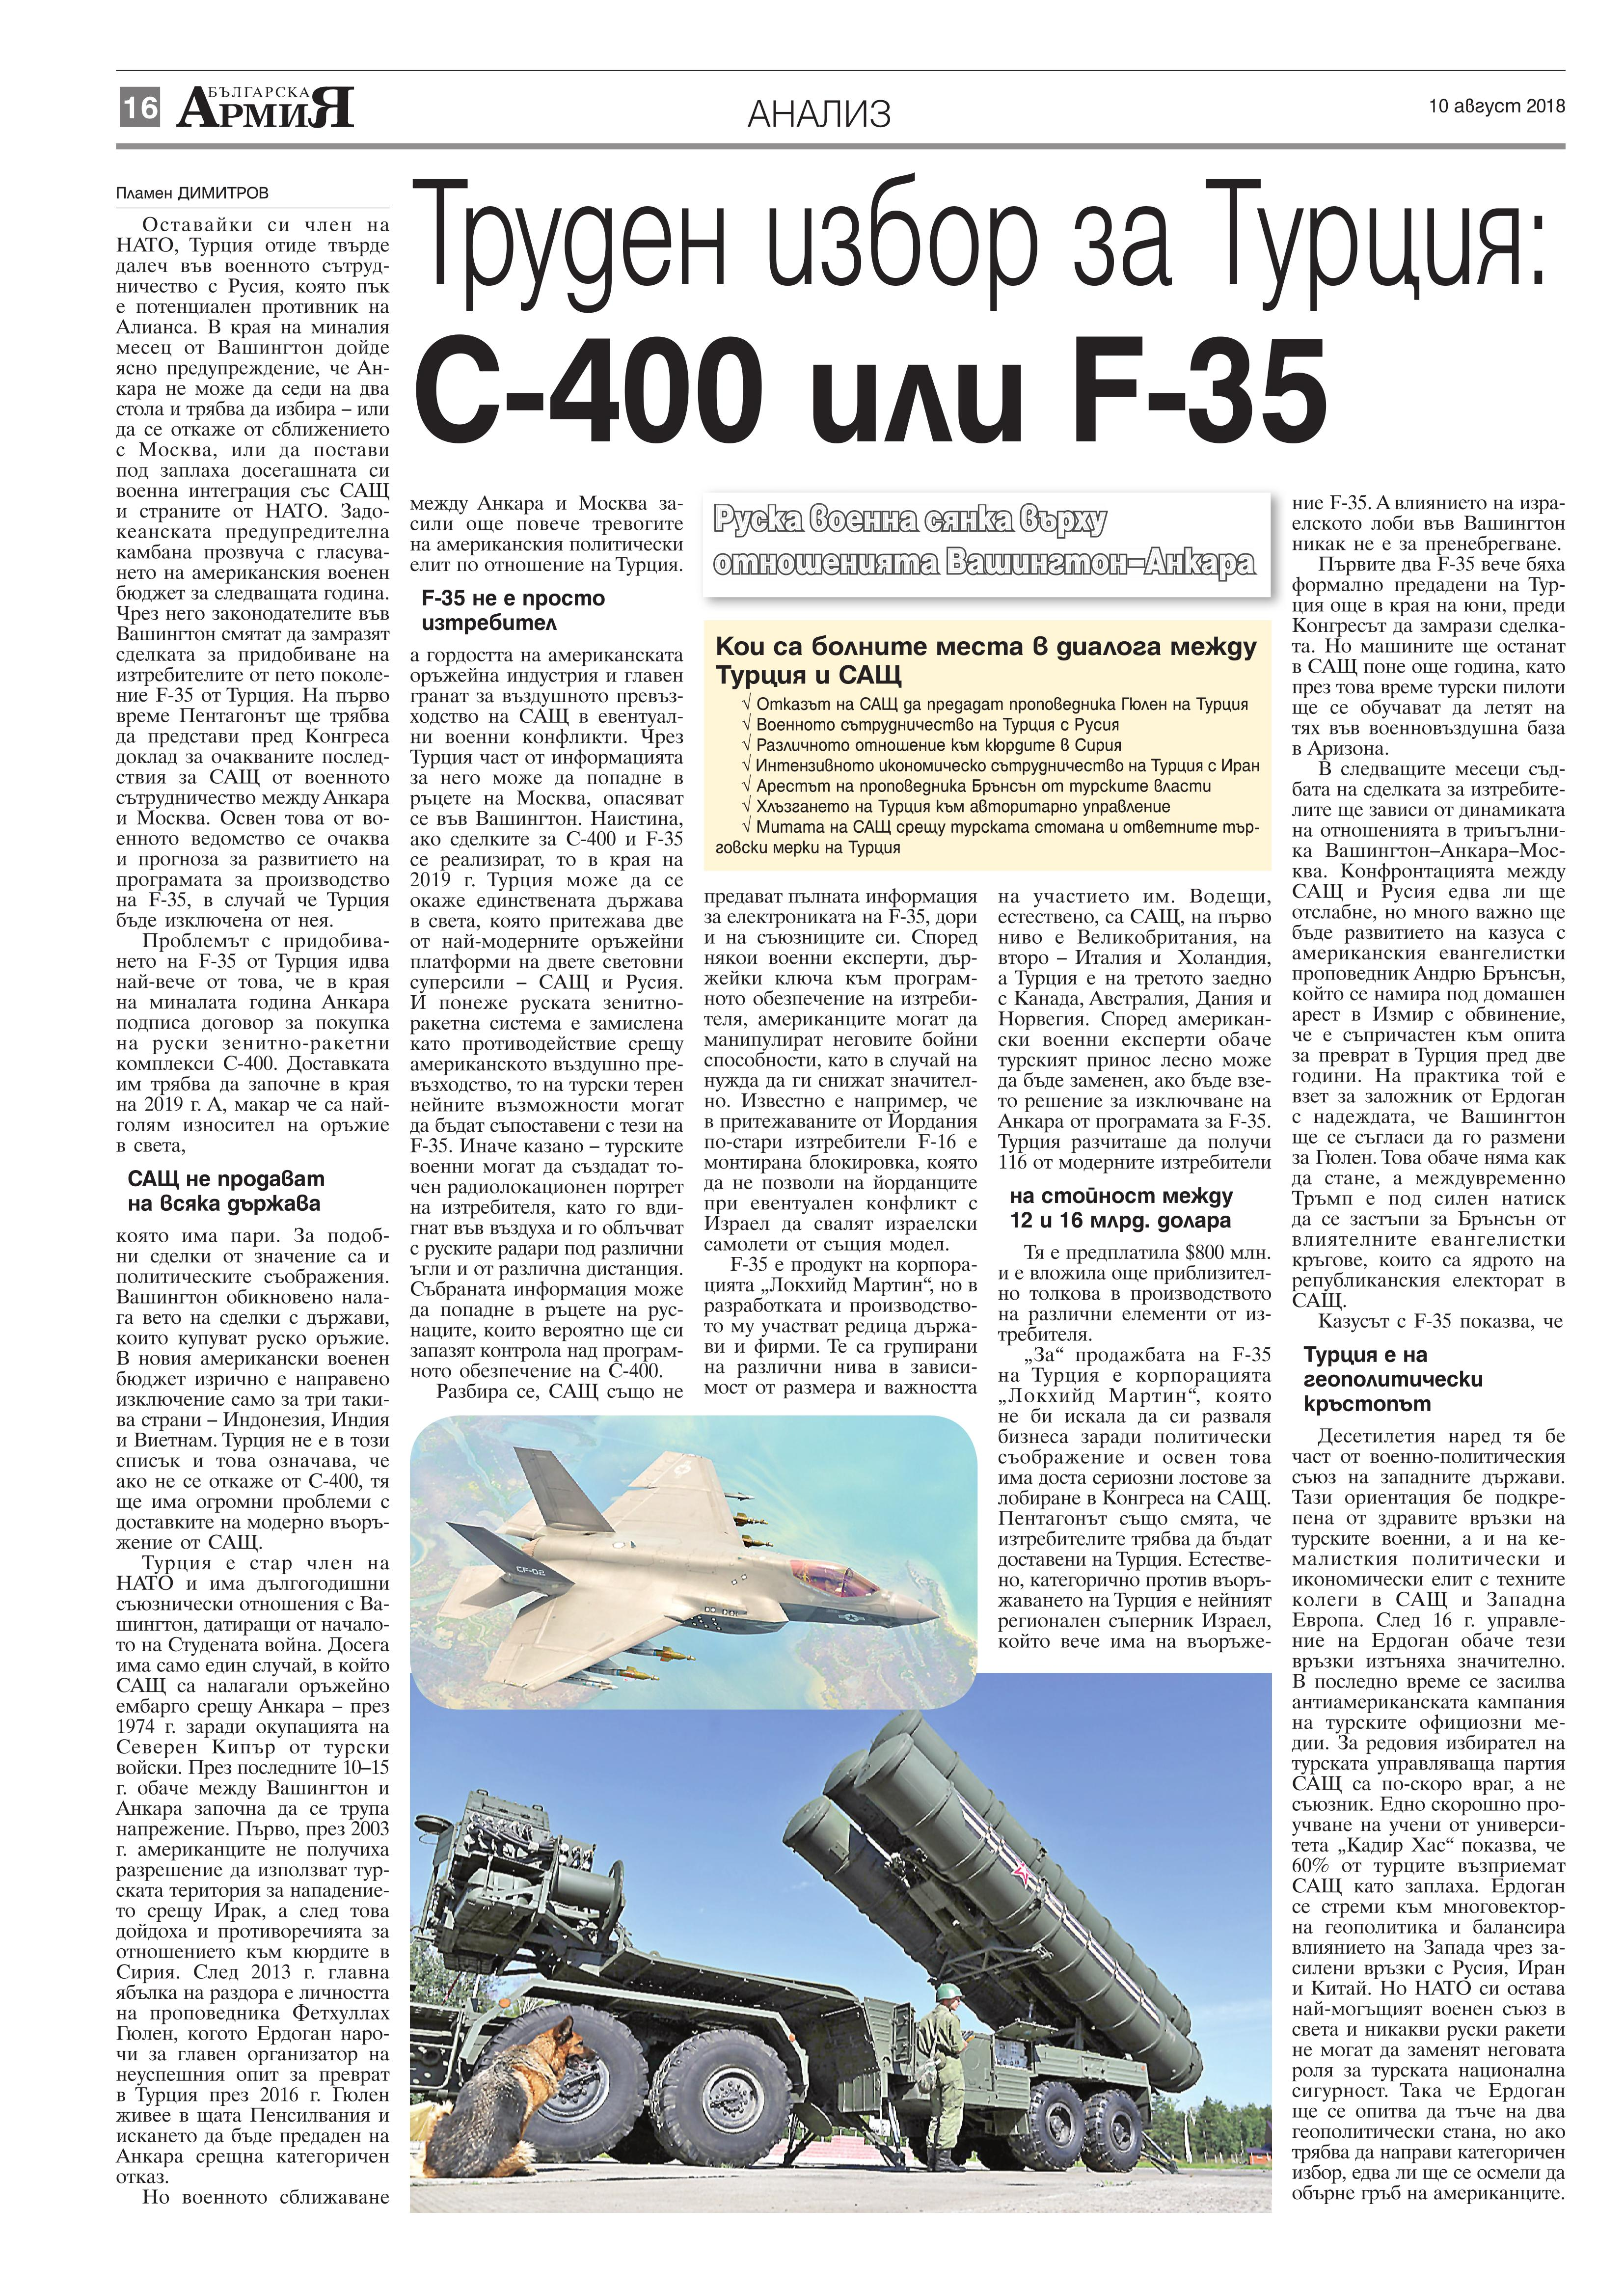 http://armymedia.bg/wp-content/uploads/2015/06/16.page1_-61.jpg